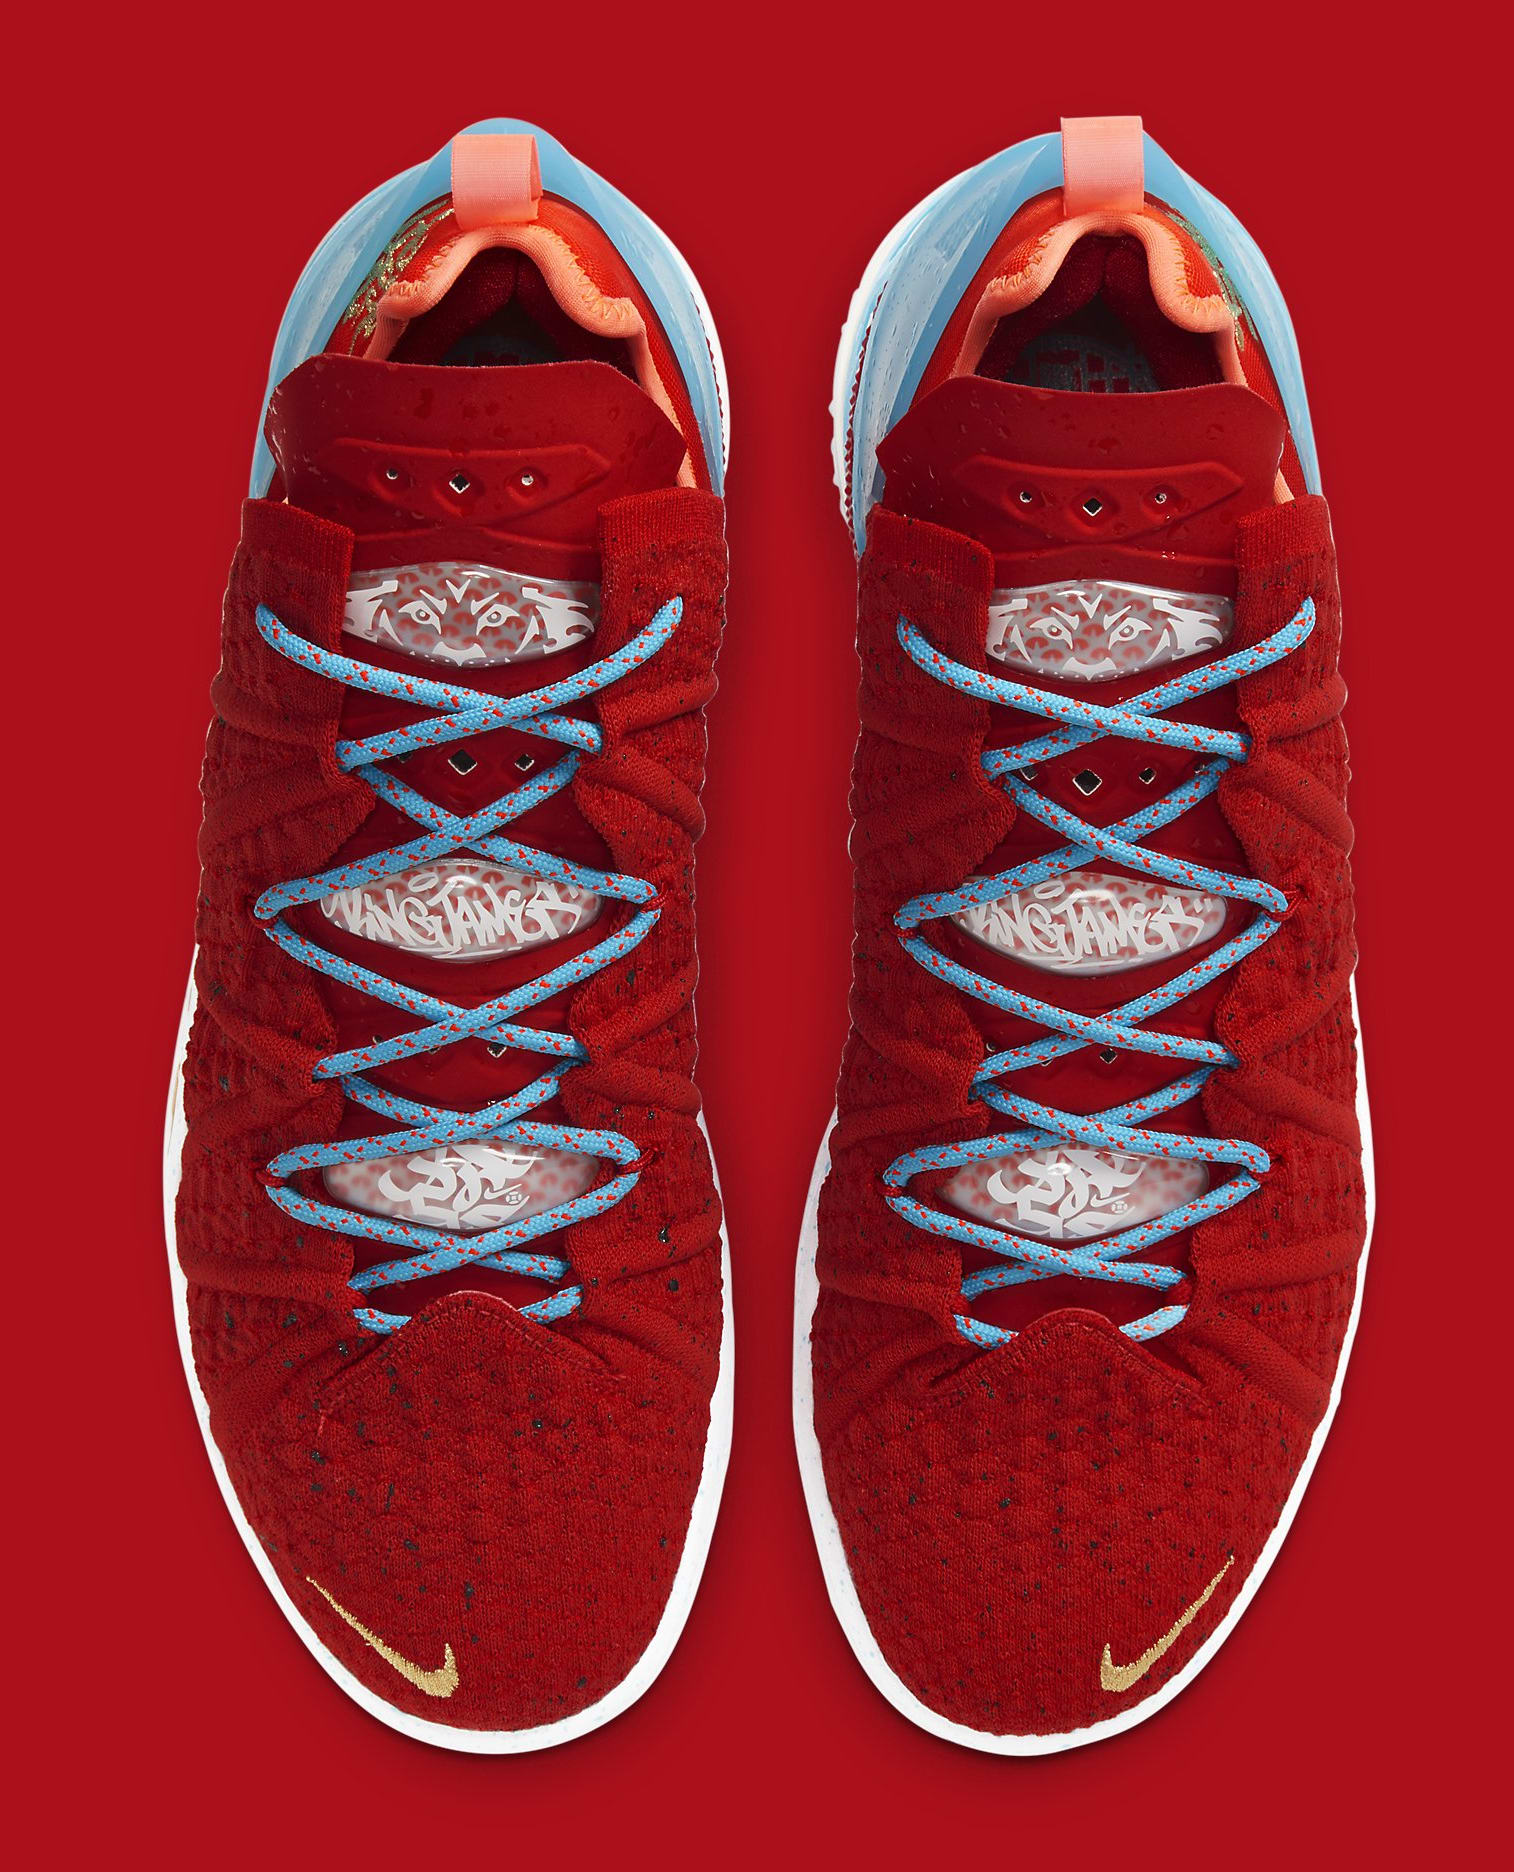 Nike LeBron 18 'Chinese New Year' CW3155-600 Top